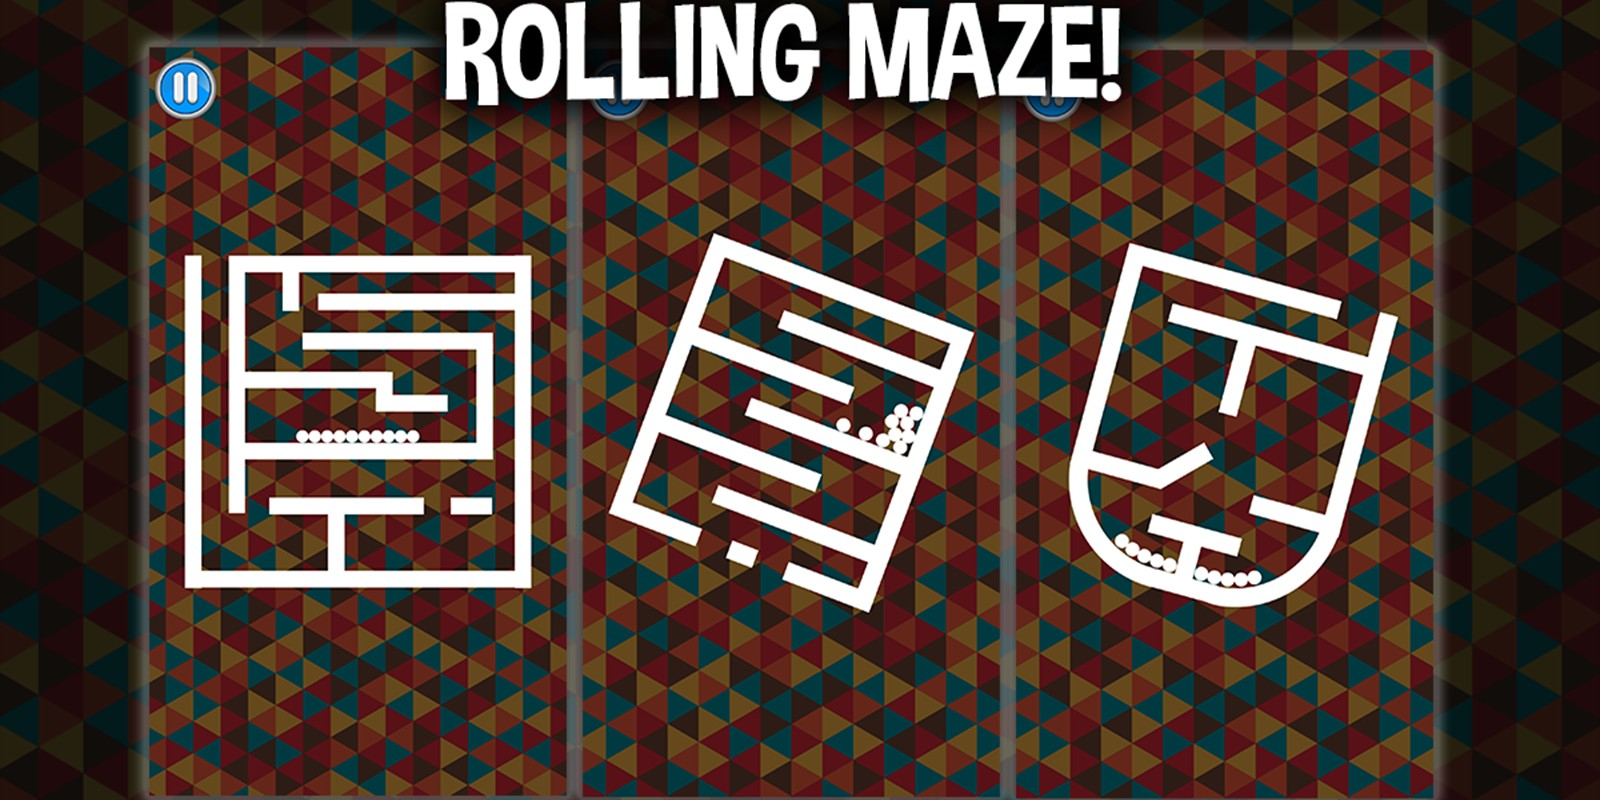 Rolling Maze - Complete Unity Project